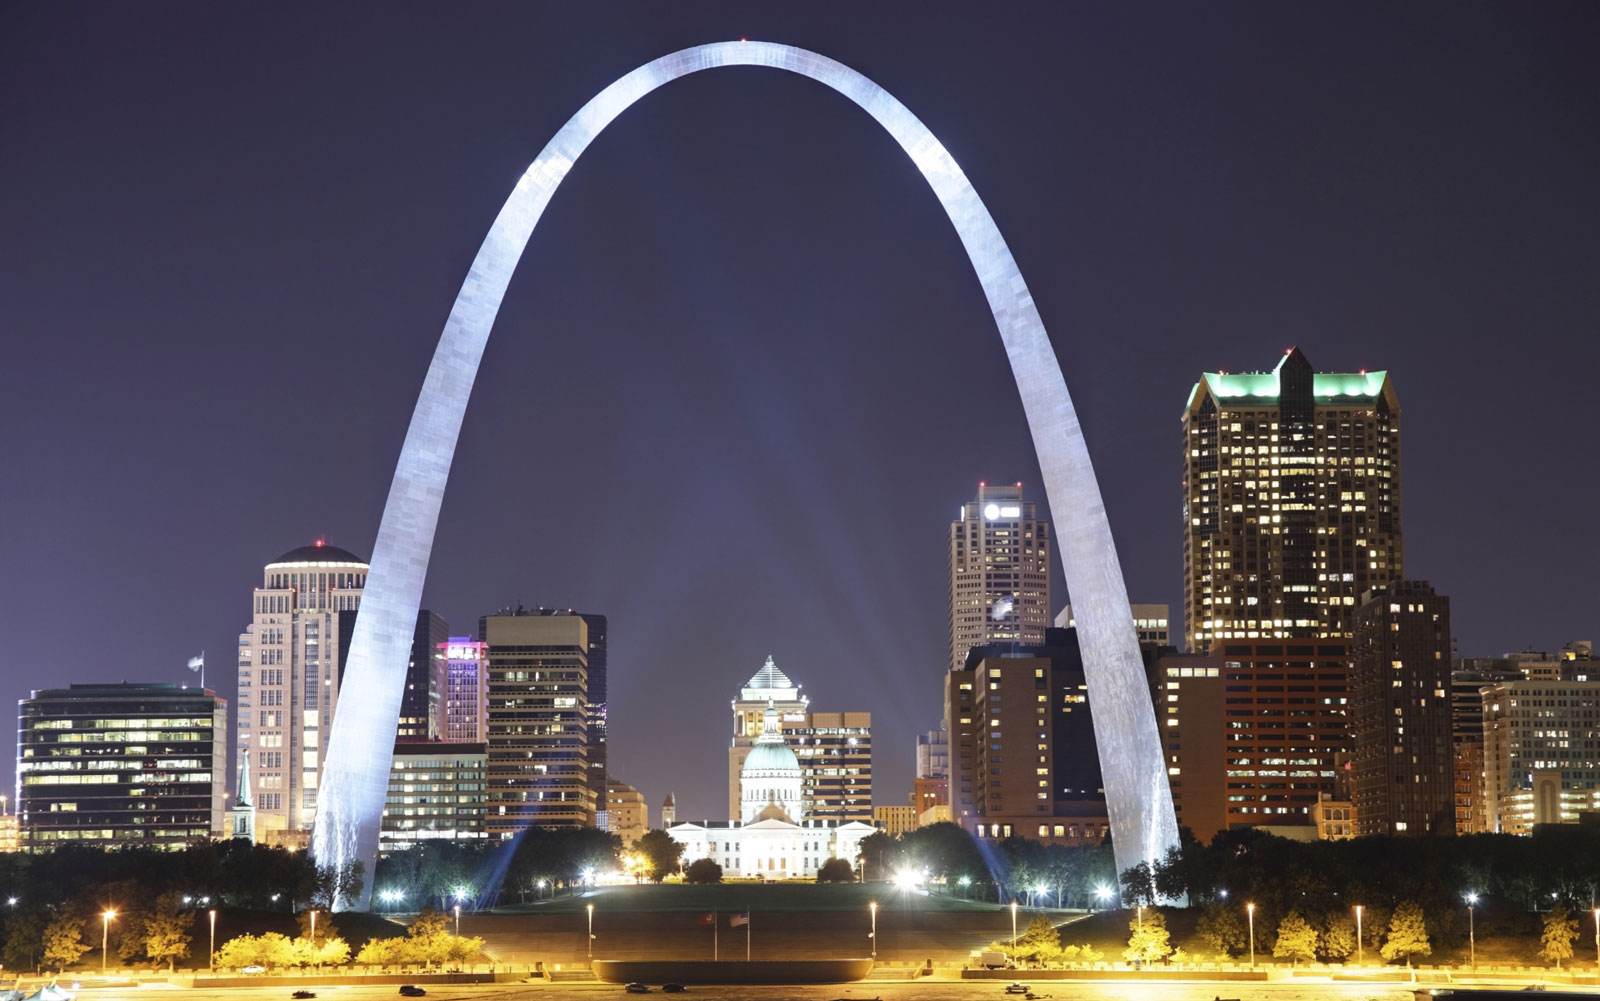 Gateway Arch in St. Louis, MO